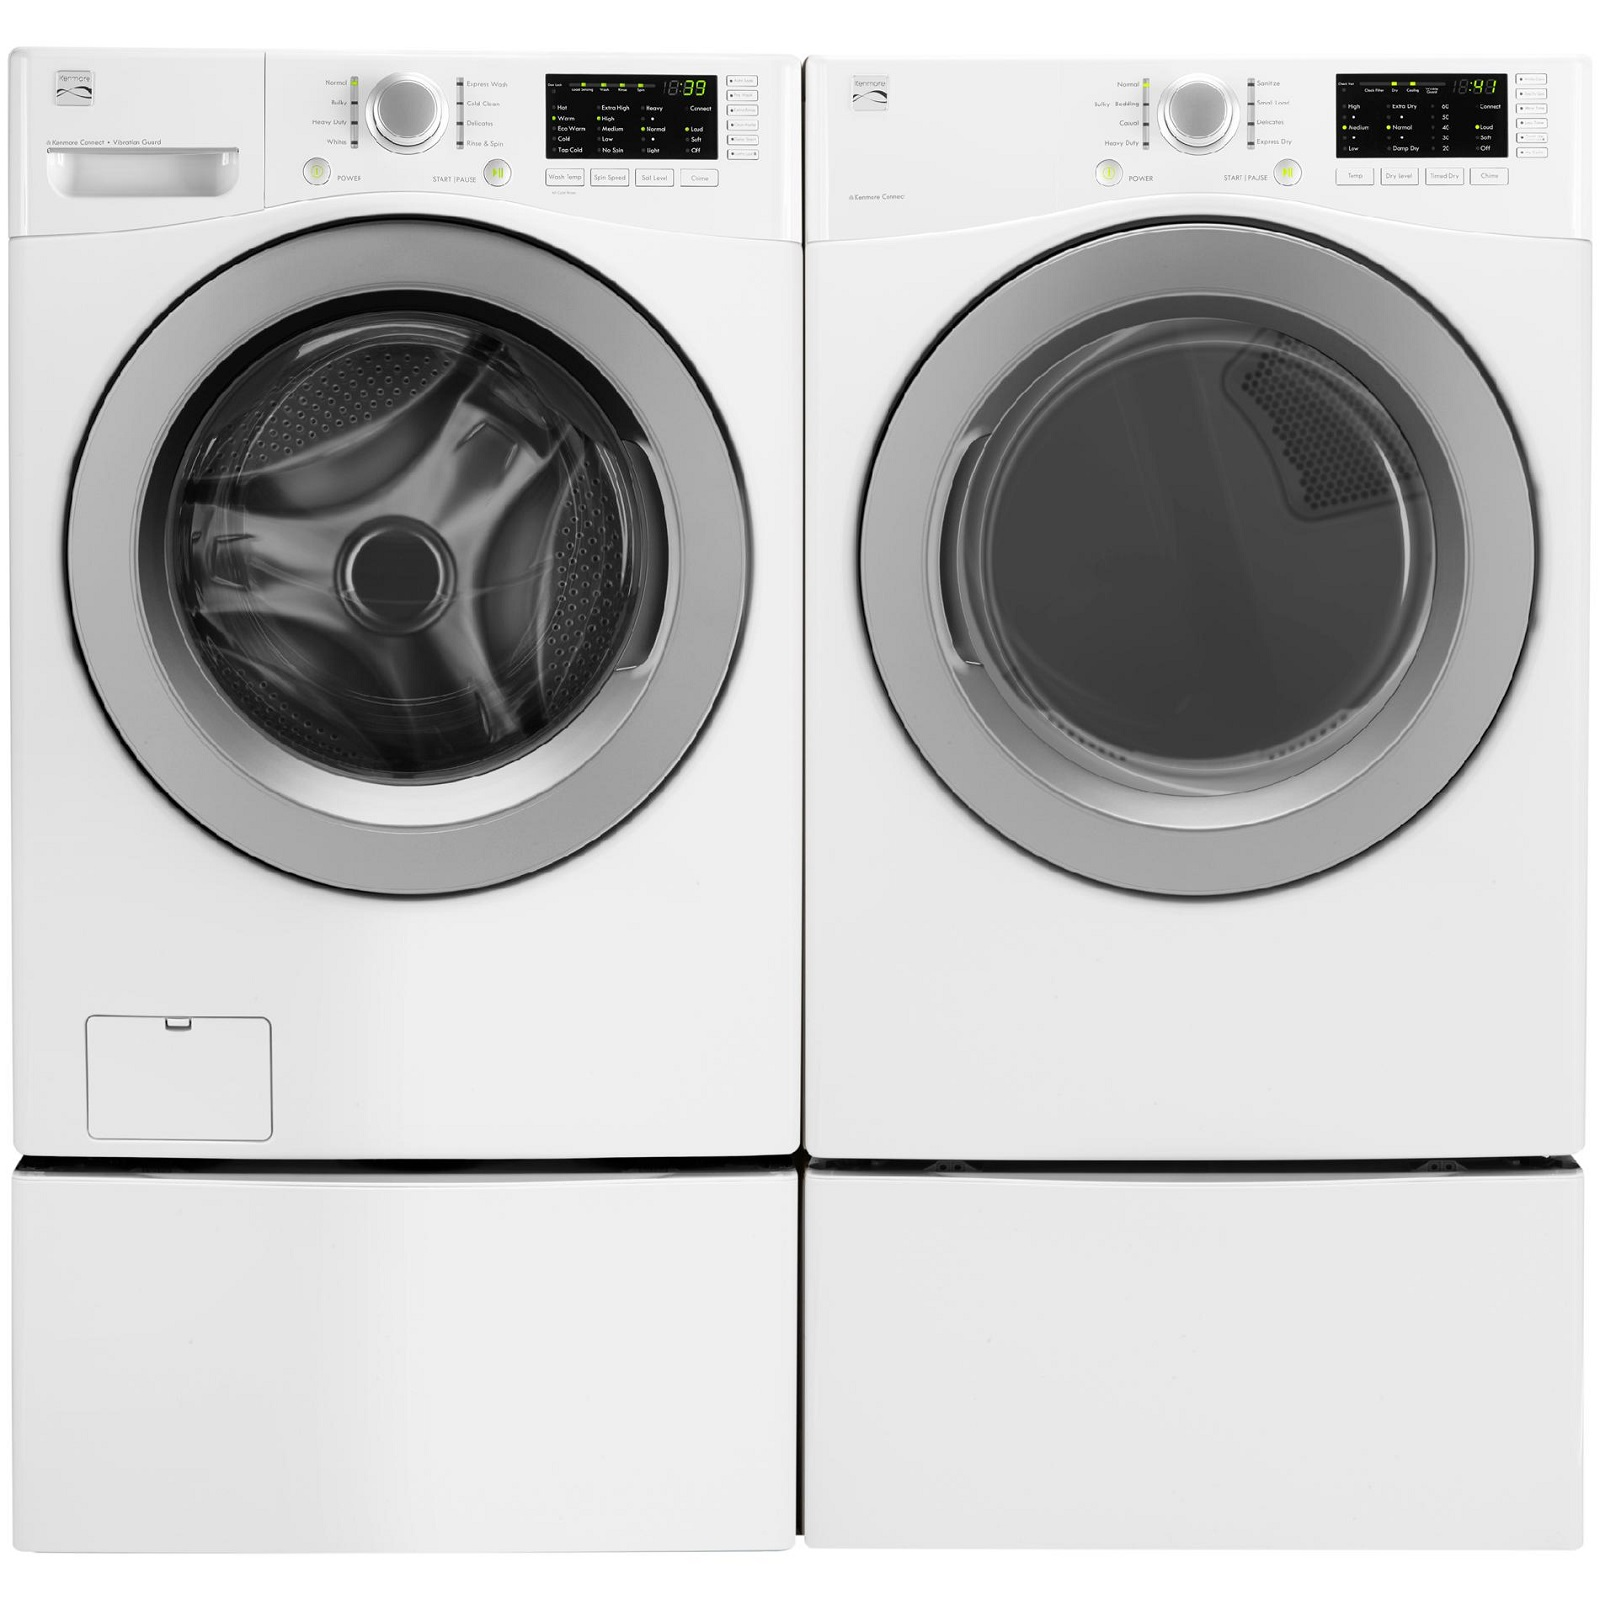 Kenmore 4.5 cu. ft. Front-Load Washer & 7.3 cu. ft. Gas Dryer  - White